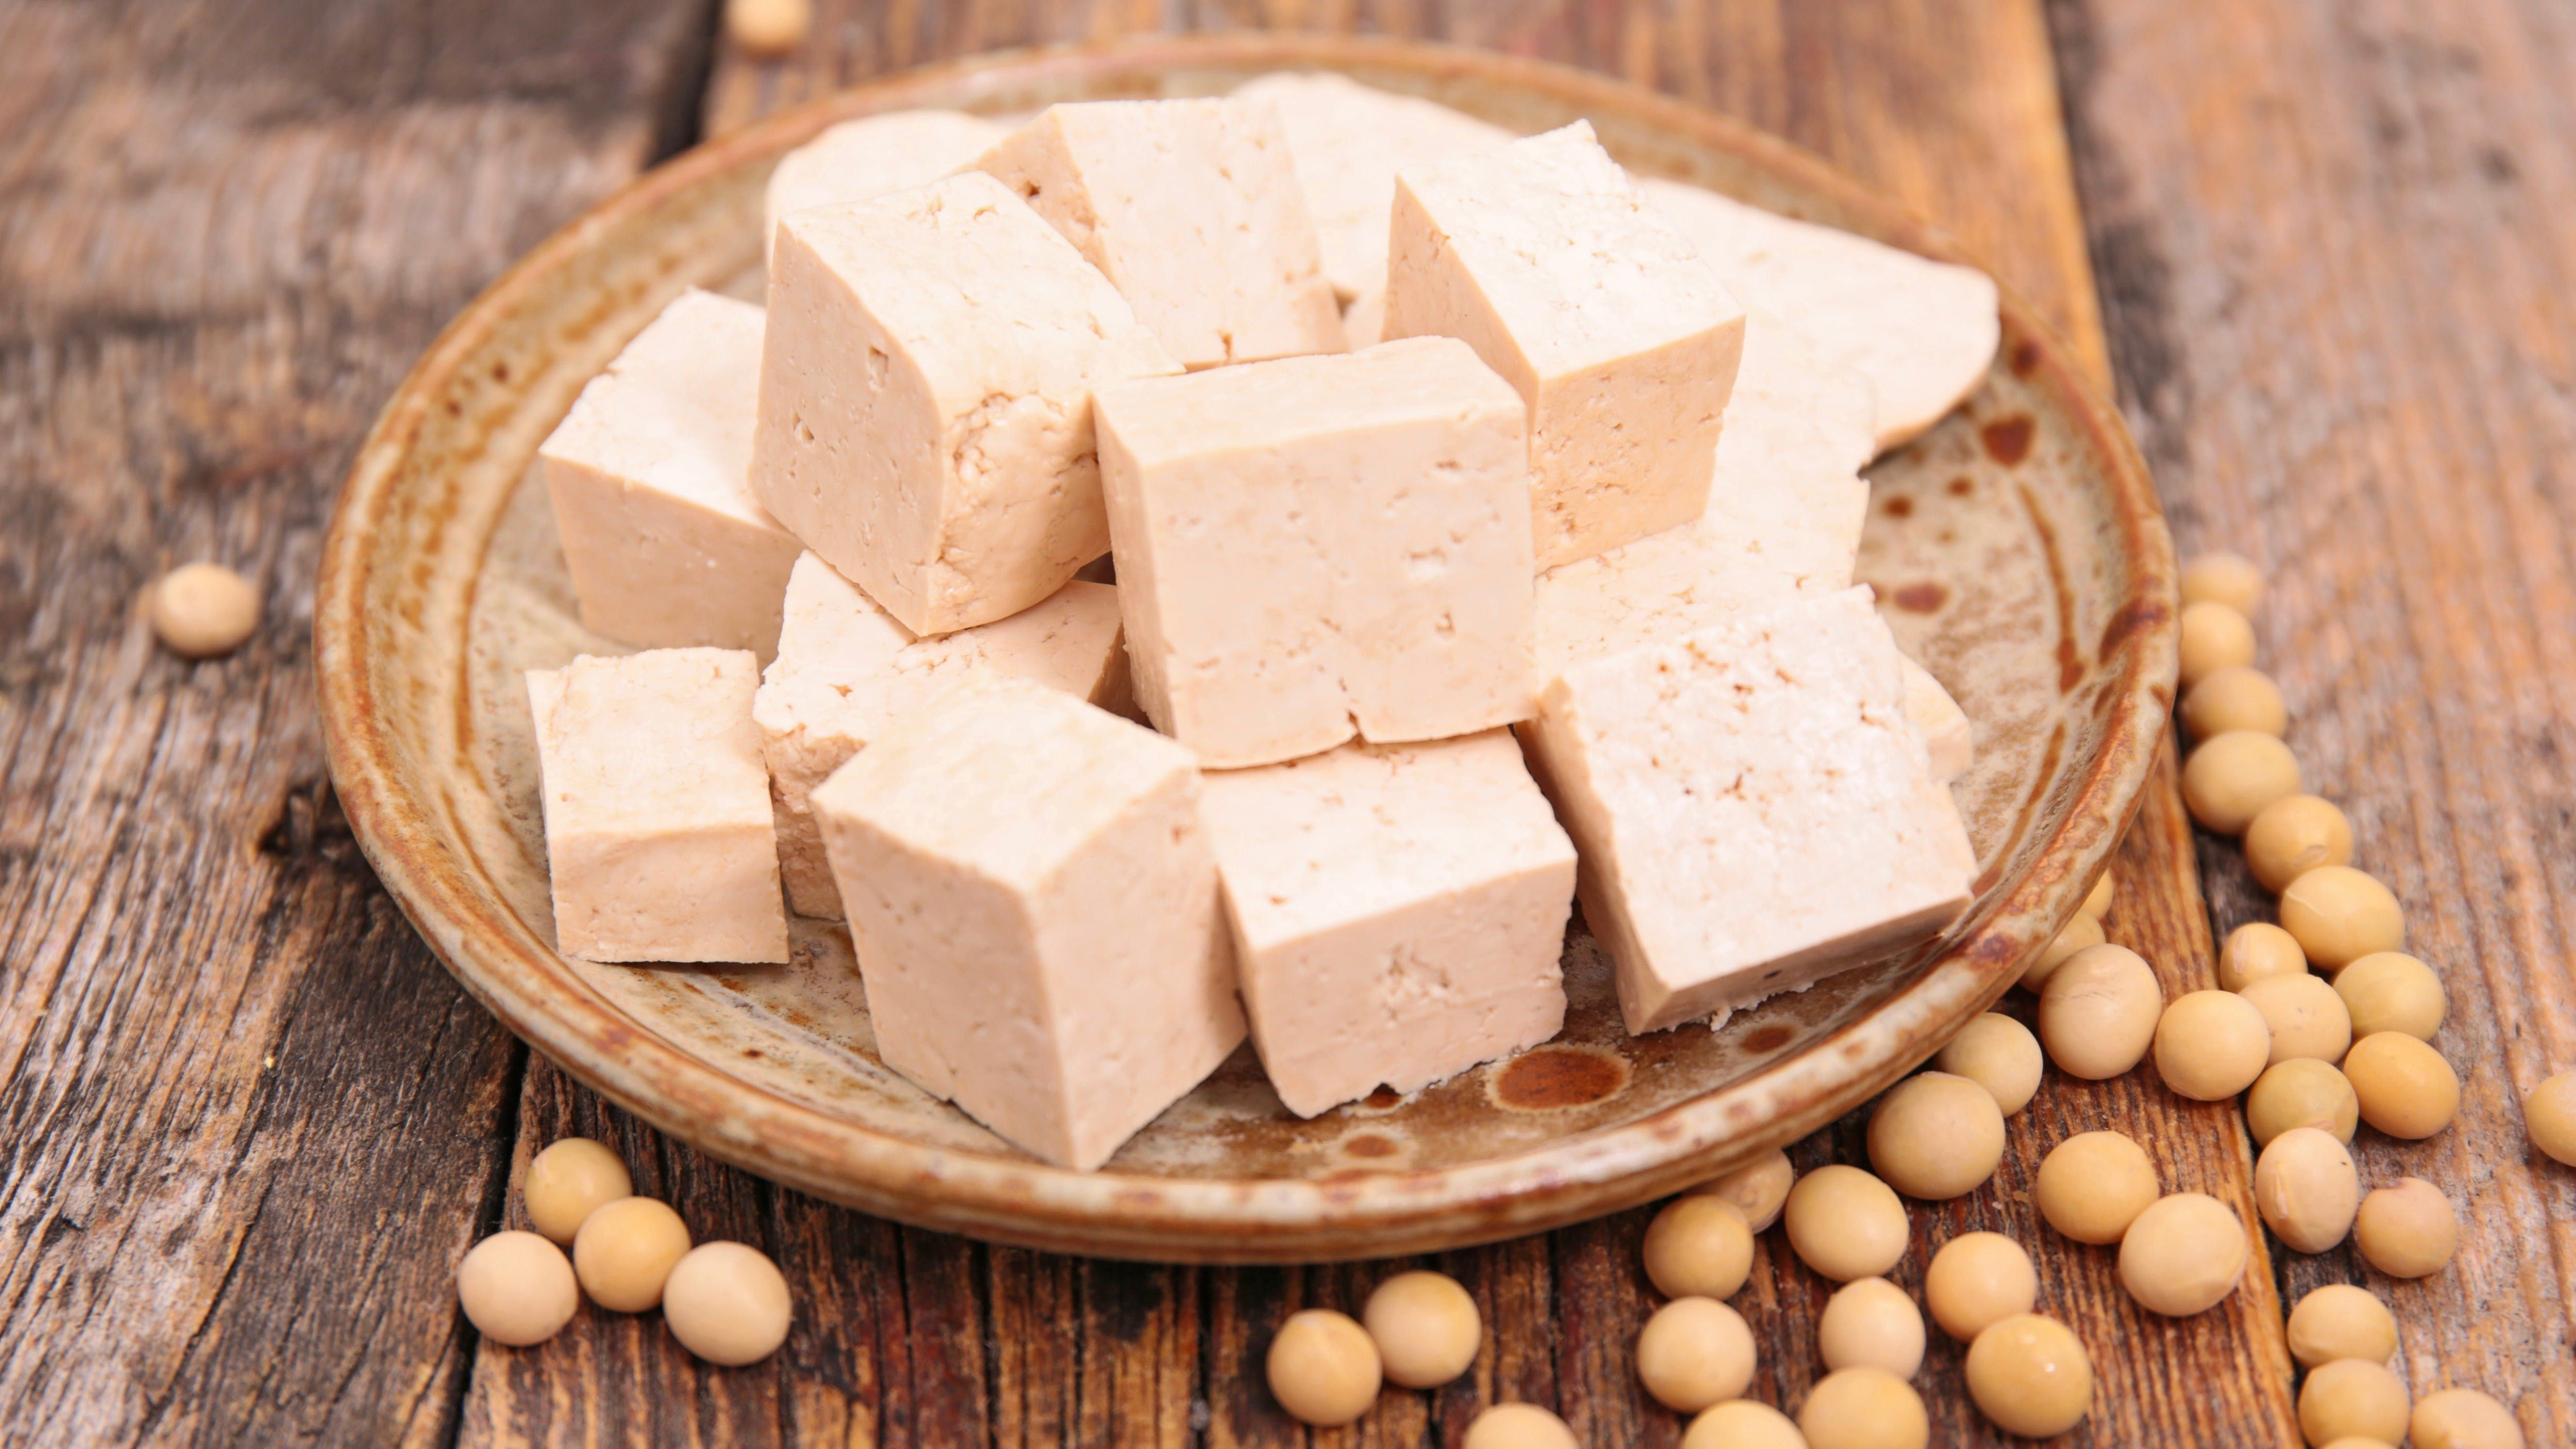 Meat vs. tofu study a new contender for the research hall